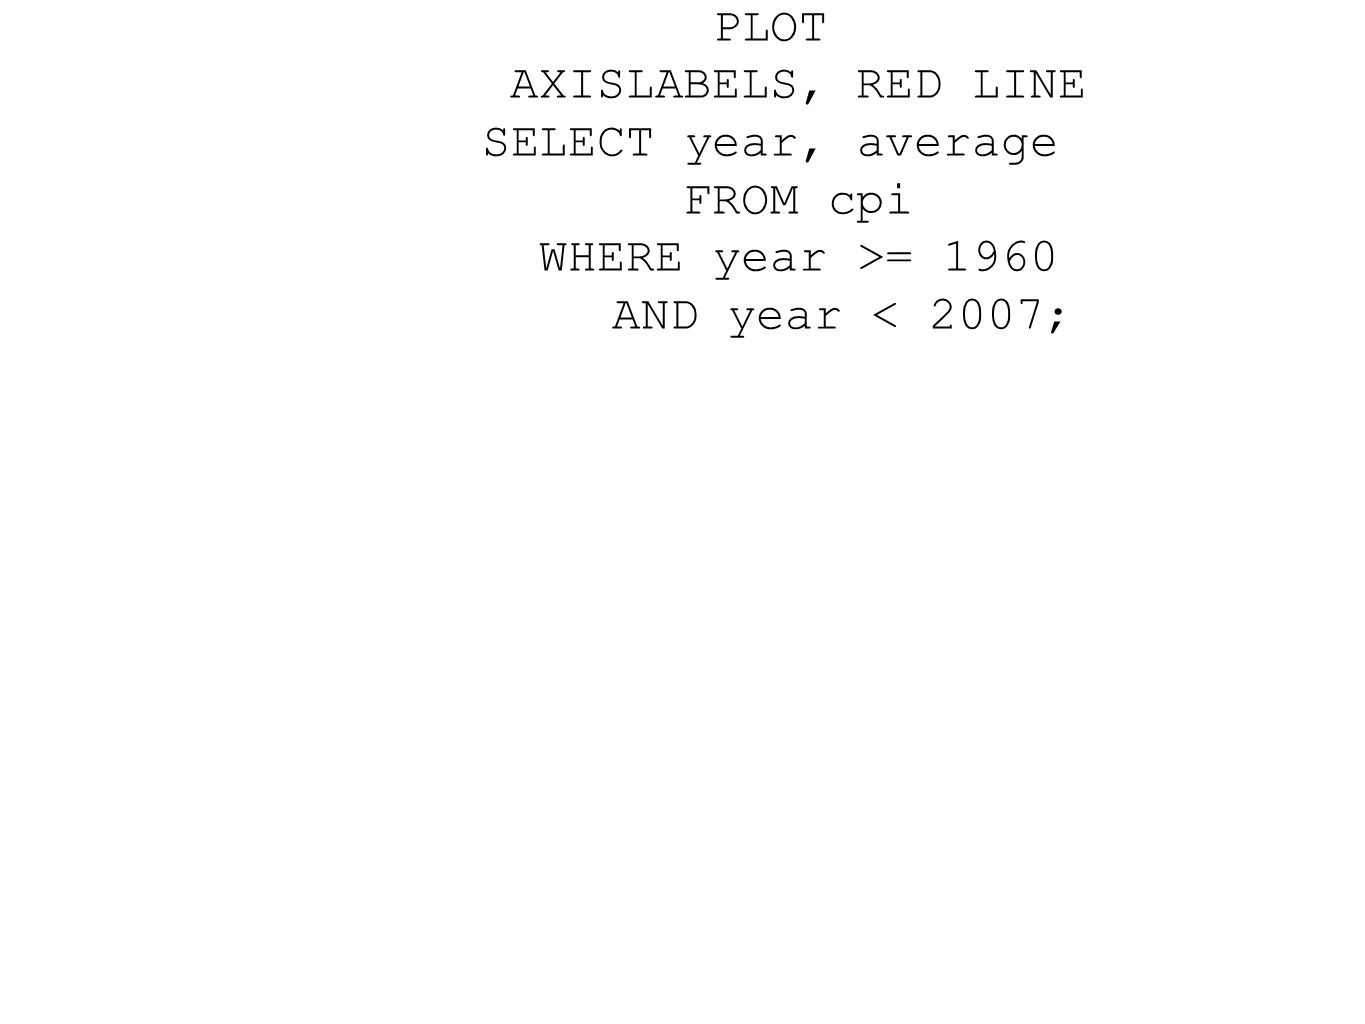 PLOT AXISLABELS, SKYBLUE LINE, DATALABELS ABOVE, DATALABELS BELOW WITH PAGE HALF FONT sanserif plain 13 TITLE CENTER Monthly Average Stock Prices, 1928-1932 NO SIDES NO YAXIS NO XAXIS COLLARSELECT b.date,b.p, IF(b.p > a.p and b.p > c.p, b.date, ), IF(b.p 1928 and b.date < 1933 and a.rownumbers = b.rownumbers - 1 and b.rownumbers = c.rownumbers - 1 ; This script tags inflection points.